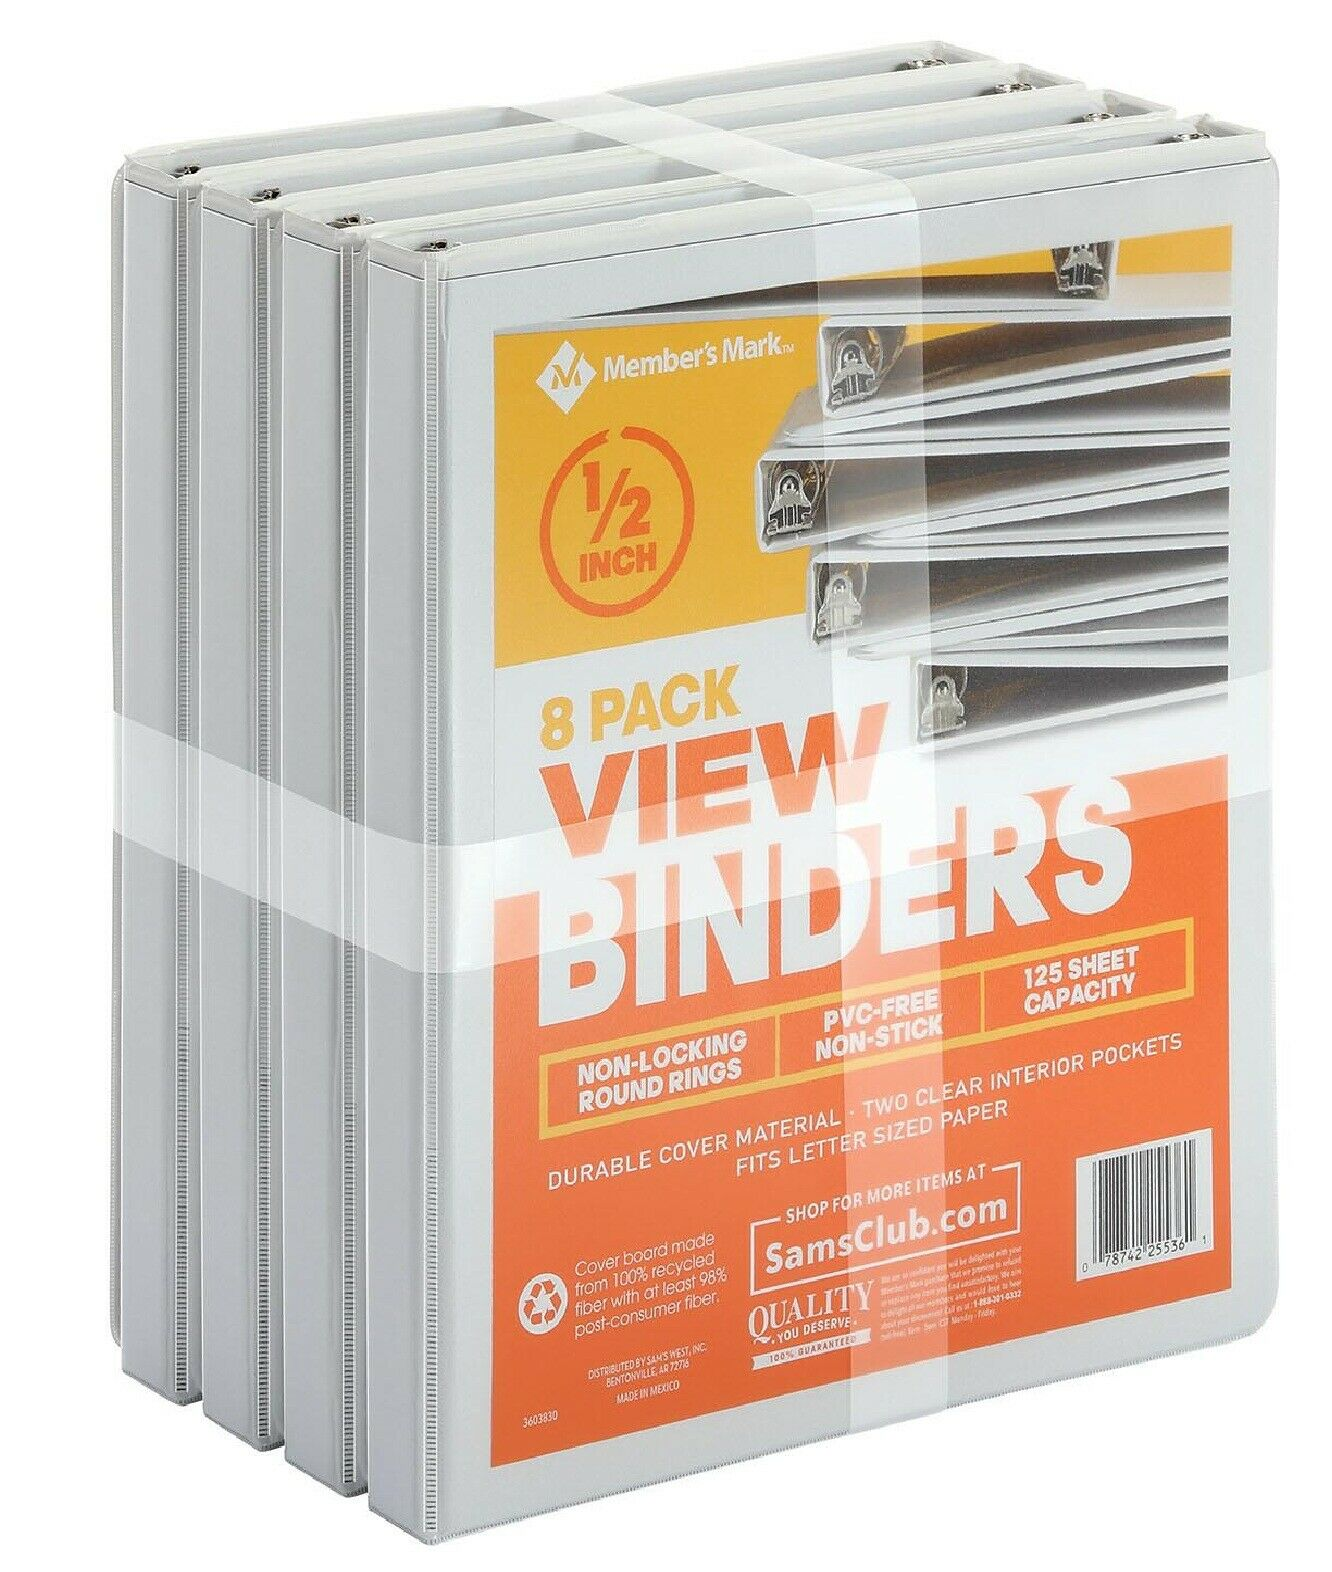 "1/2"" Round-Ring View Binder, White"